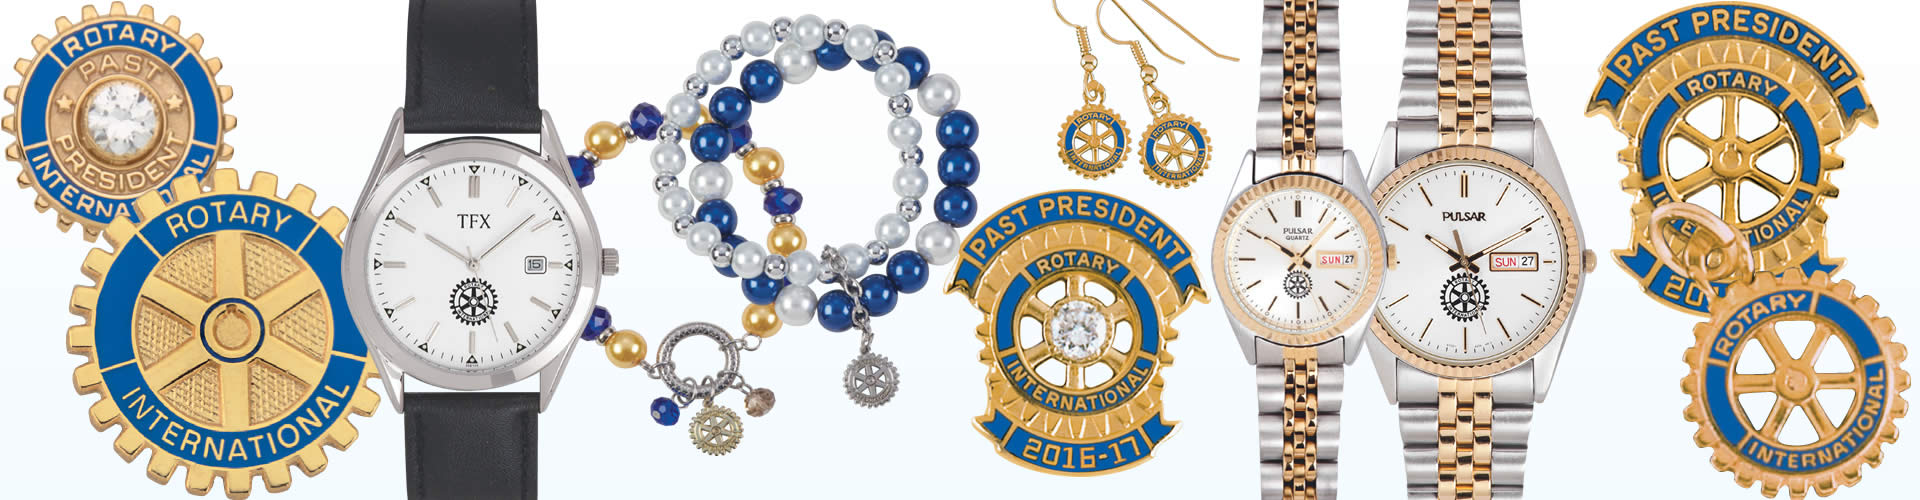 Rotary Club Watches and Pins Canada